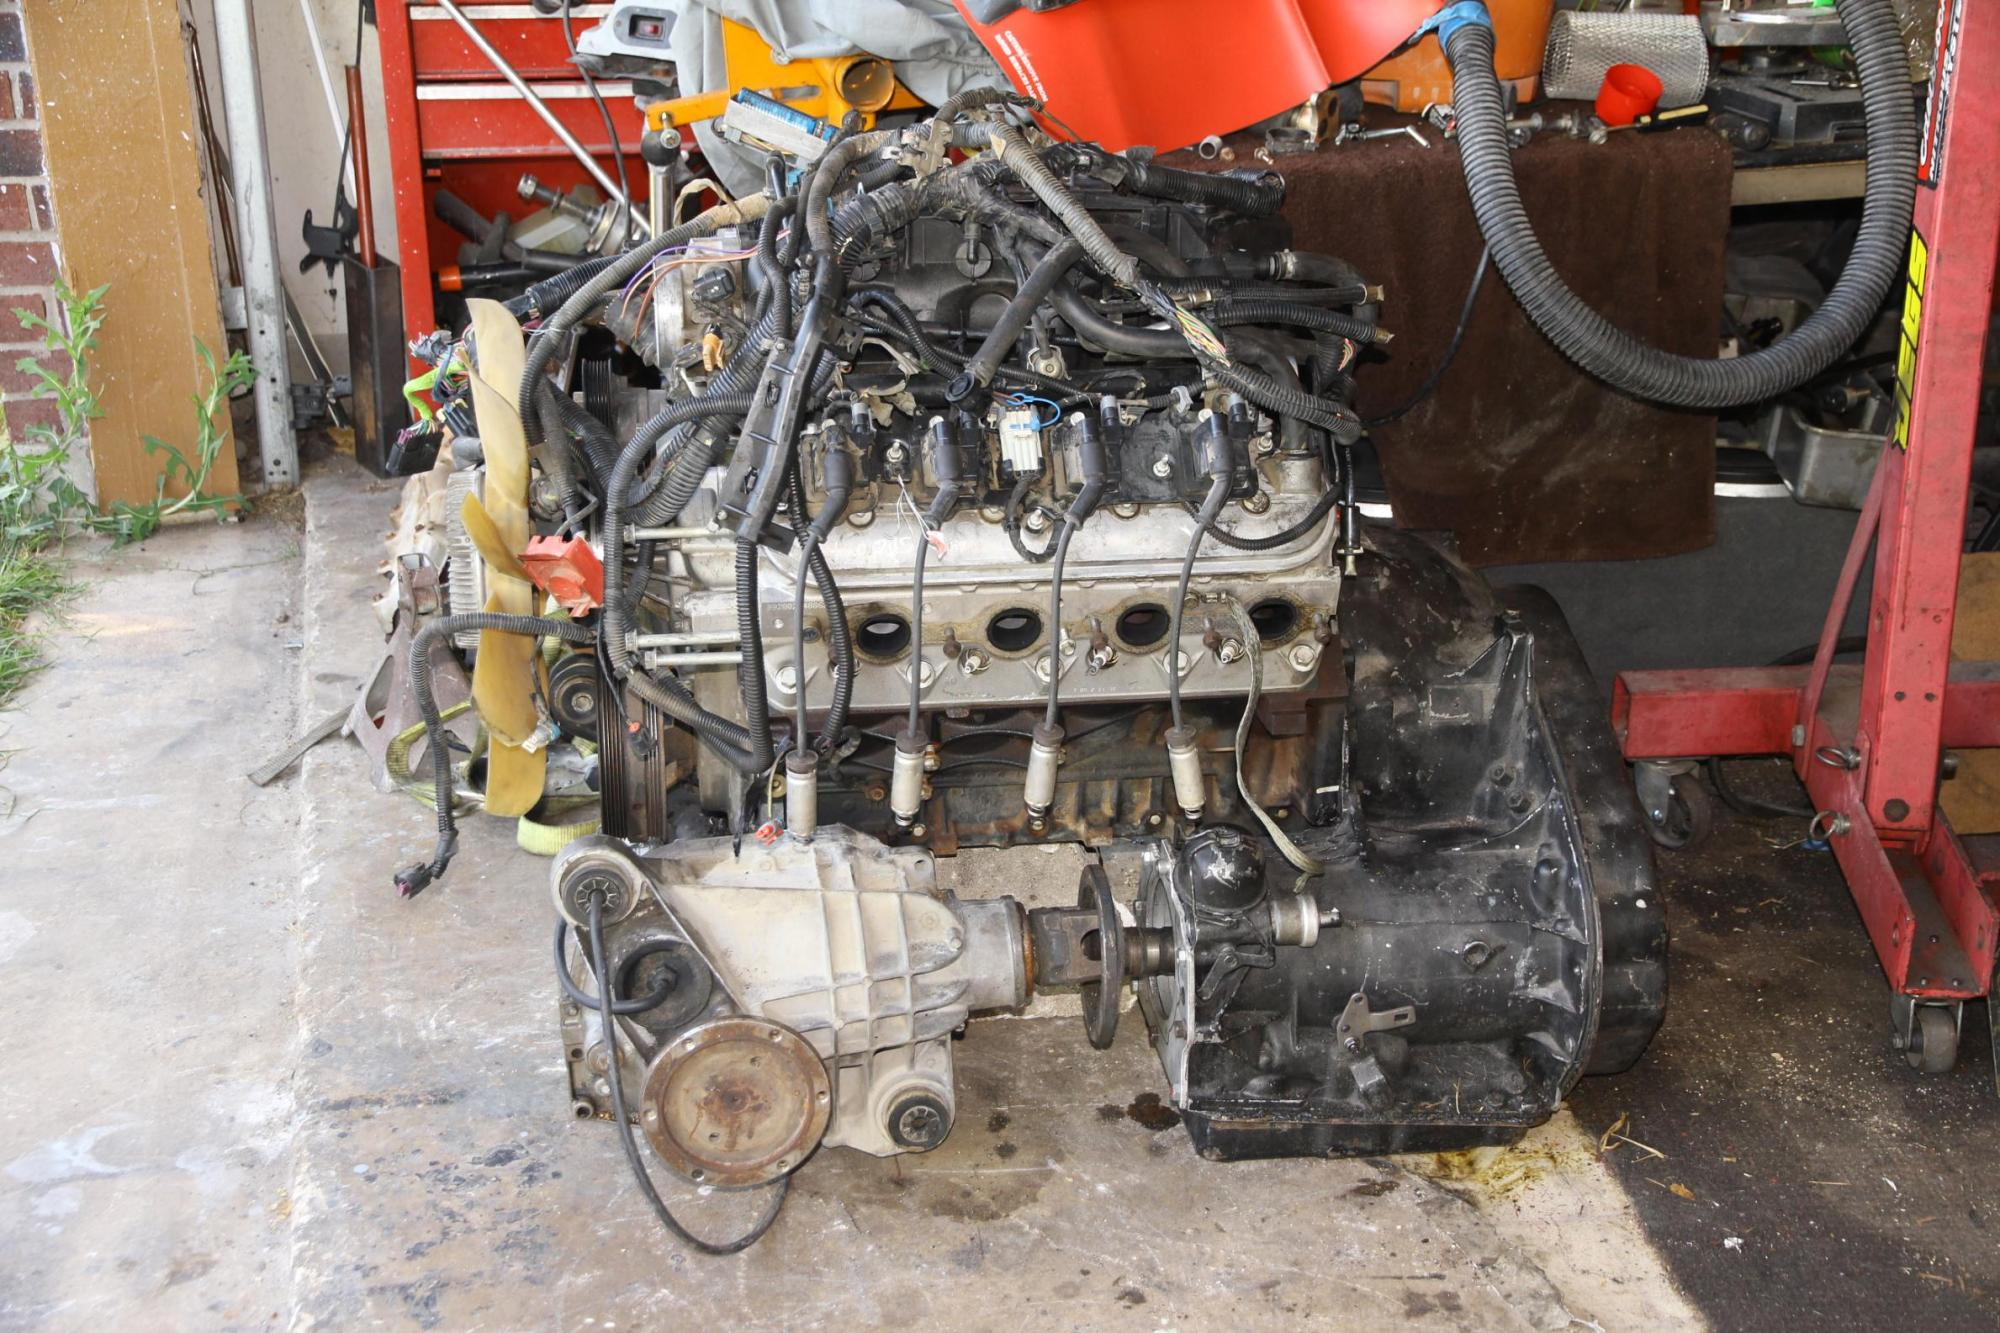 hight resolution of will an ls 1 mate to olds th 425 transaxle ls1